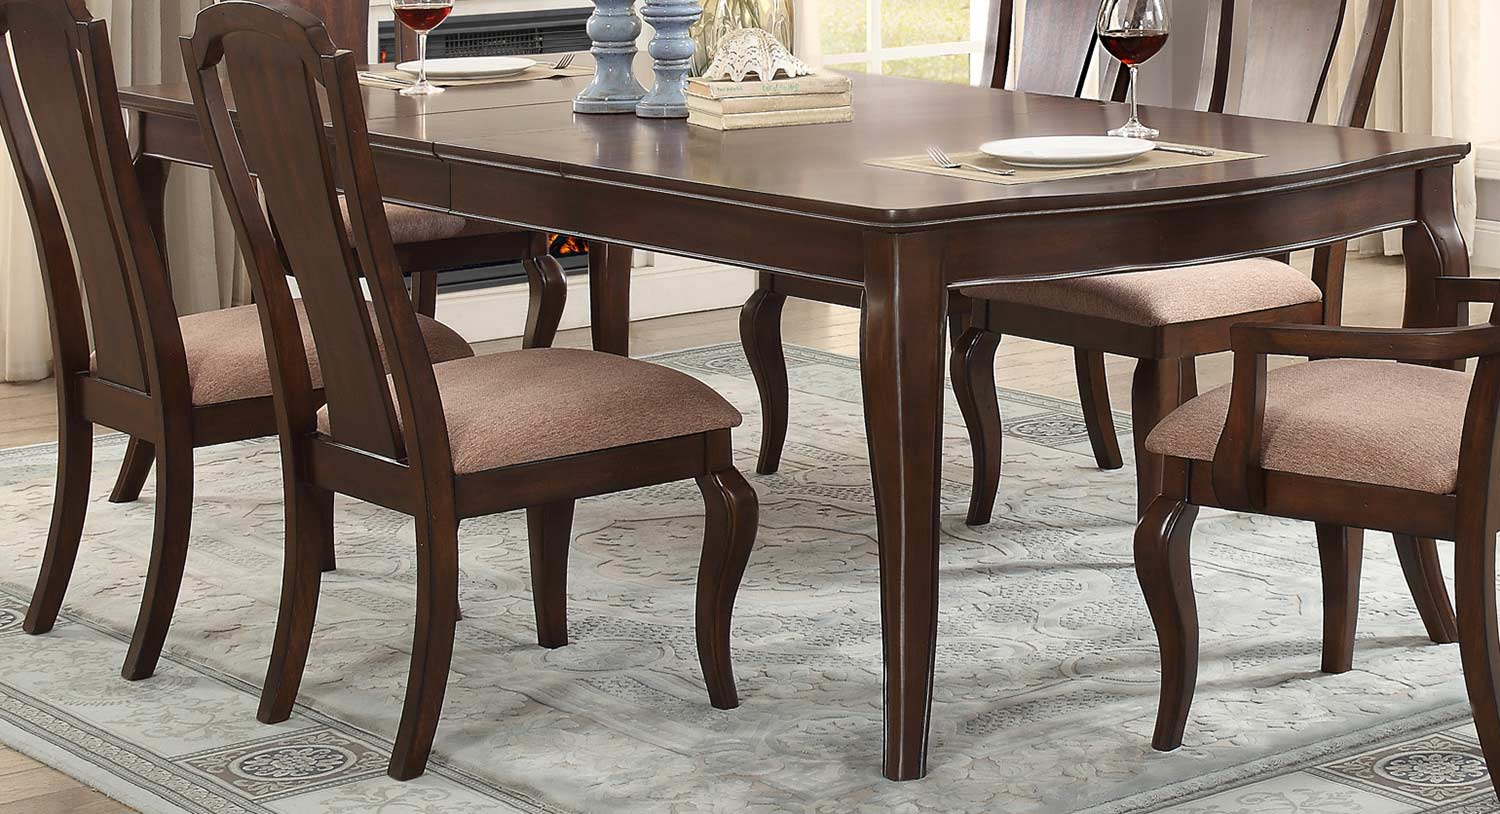 Homelegance Coleraine Dining Table - Cherry